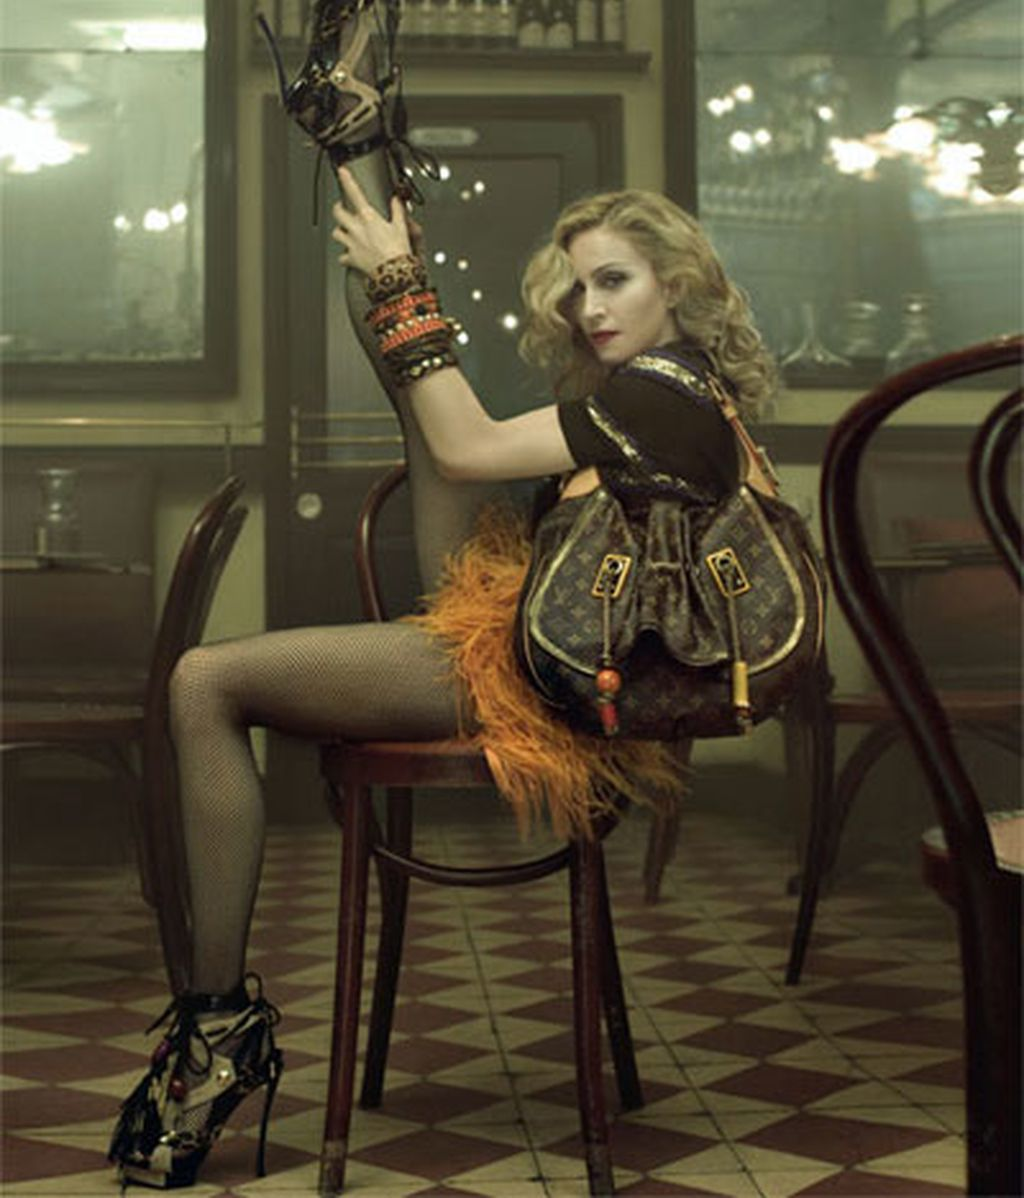 Madonna (Louis Vuitton)